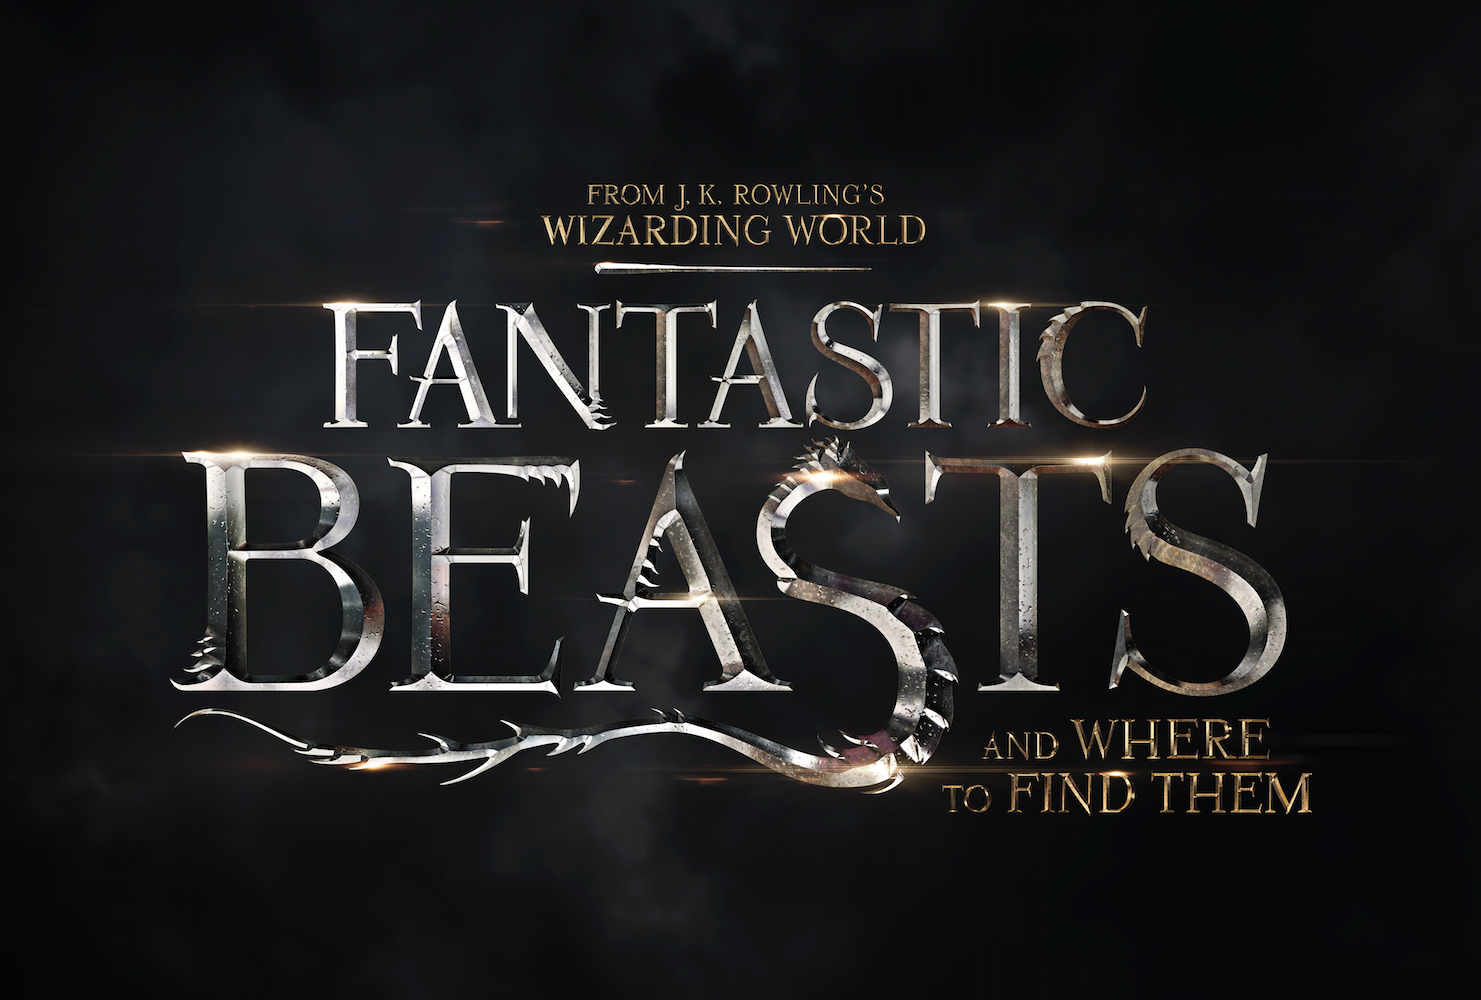 Fantastic Beasts and Where to Find Them (Just Jared)